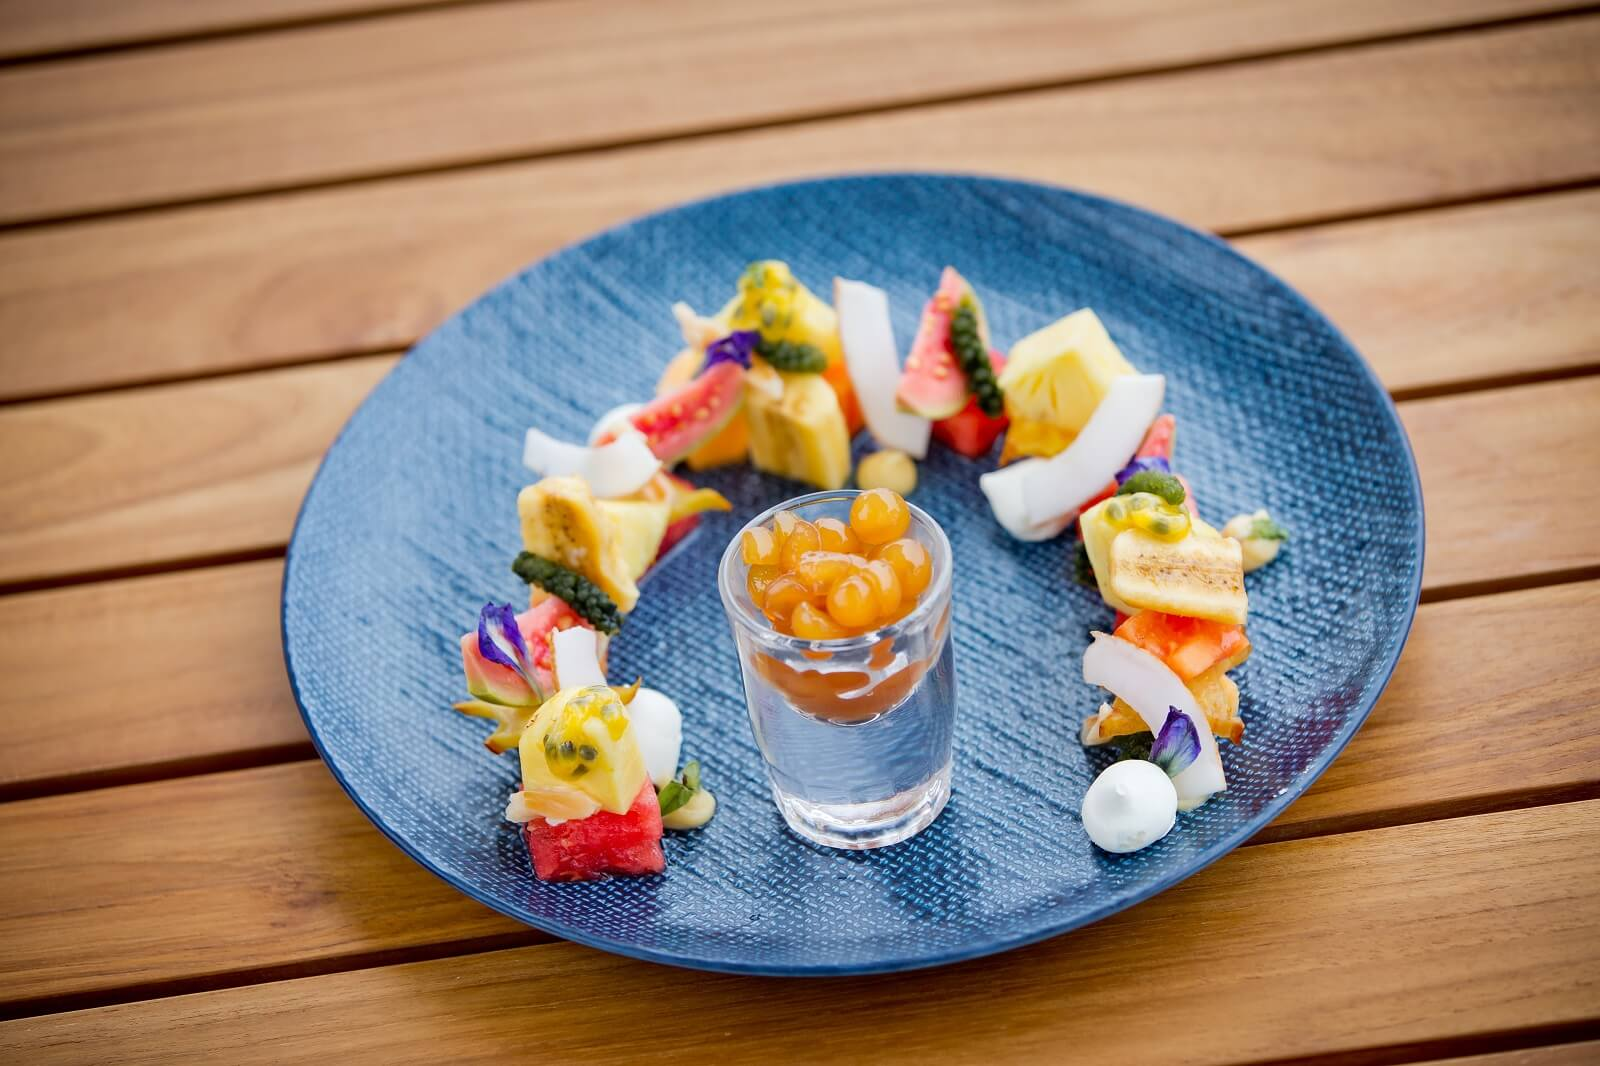 Malamala Beach Club Fiji Island Fruit Salad